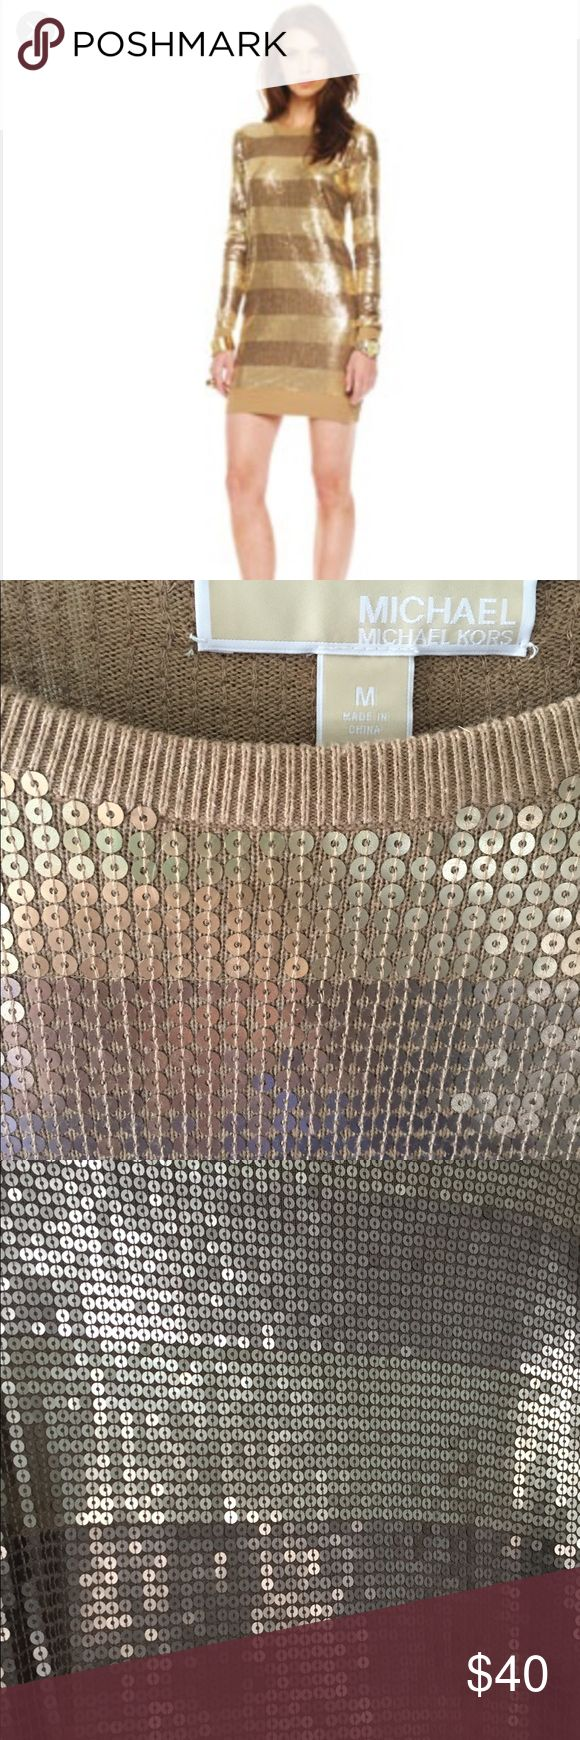 MICHAEL Michael Kors Gold Sequin Sweater Dress I LOVE this dress, but it's just a bit long on me. Wore it once. Camel and gold color. Sequins in perfect shape and well sewn. MICHAEL Michael Kors Dresses Long Sleeve